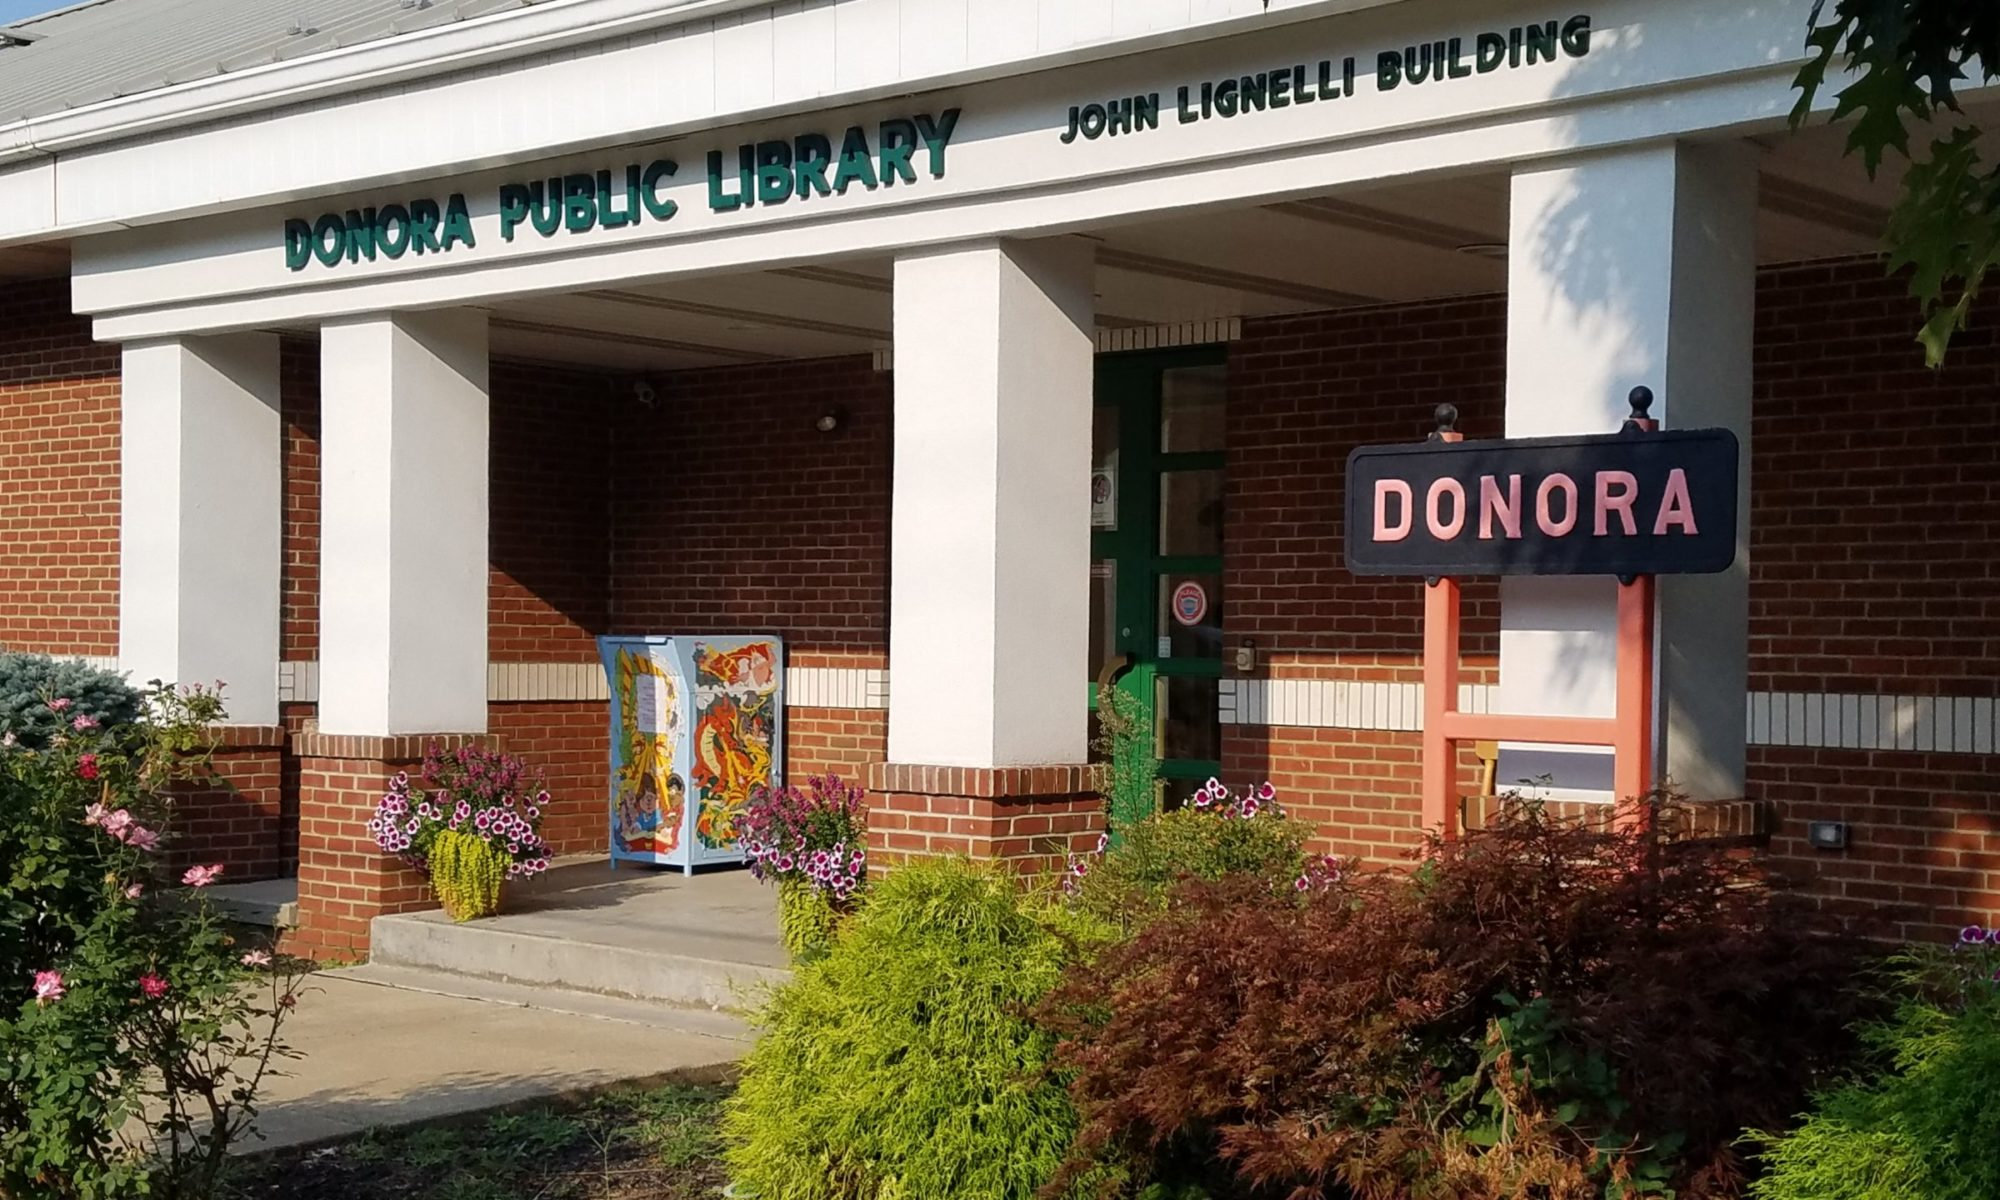 Donora Public Library